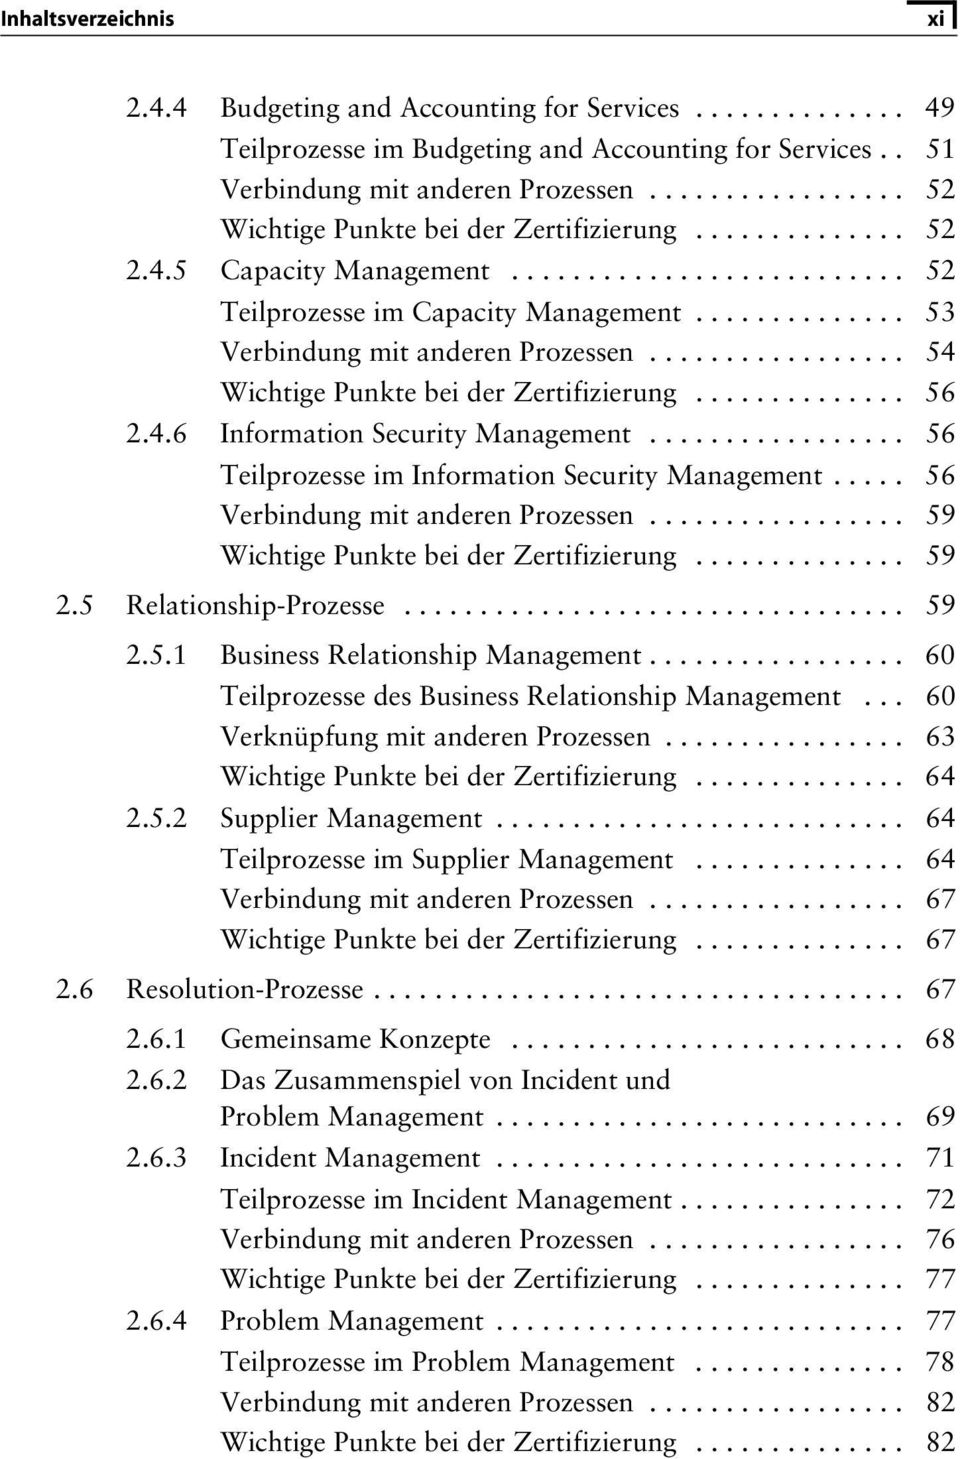 ................ 54 Wichtige Punkte bei der Zertifizierung.............. 56 2.4.6 Information Security Management................. 56 Teilprozesse im Information Security Management.